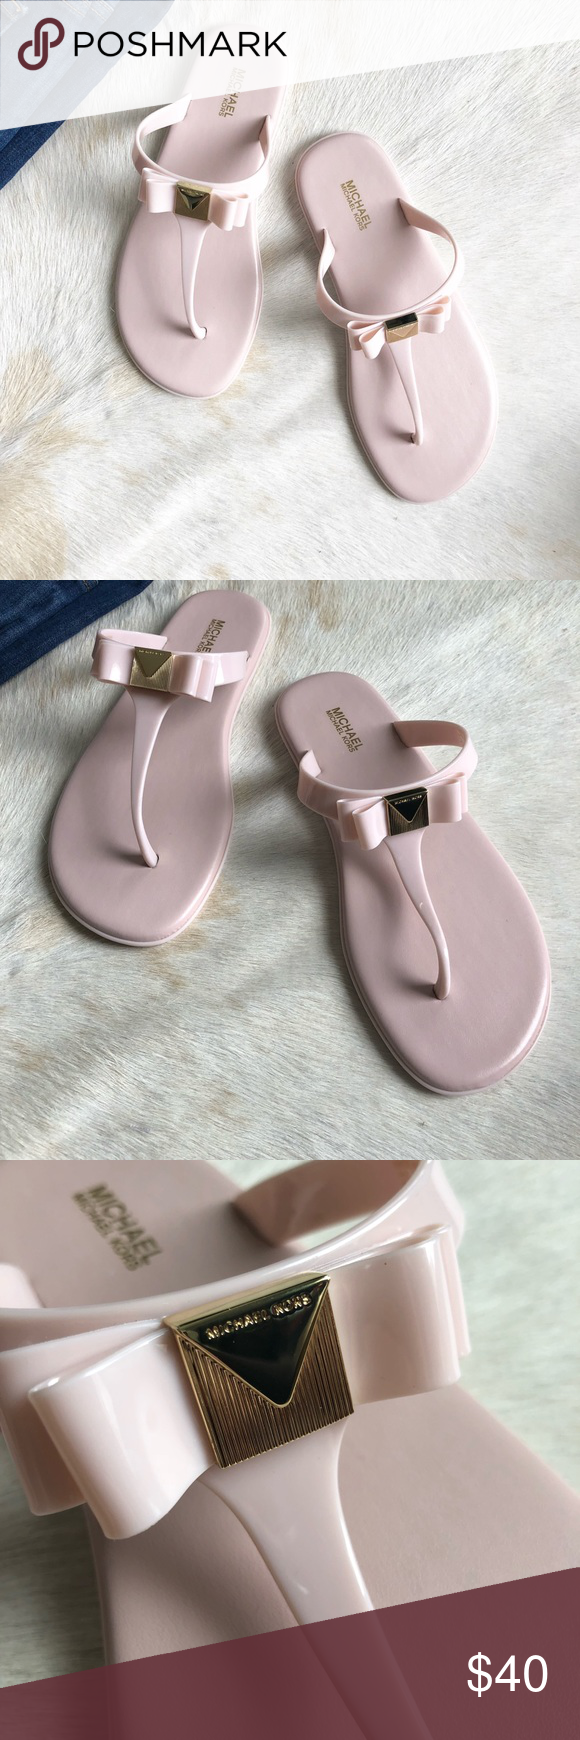 4ba6deb9ff91 🆕Michael Kors Caroline Jelly Thong in Pink- Sz 8 Brand new with Box.  Adorable jelly shoes with padded bottom so they are very comfortable.